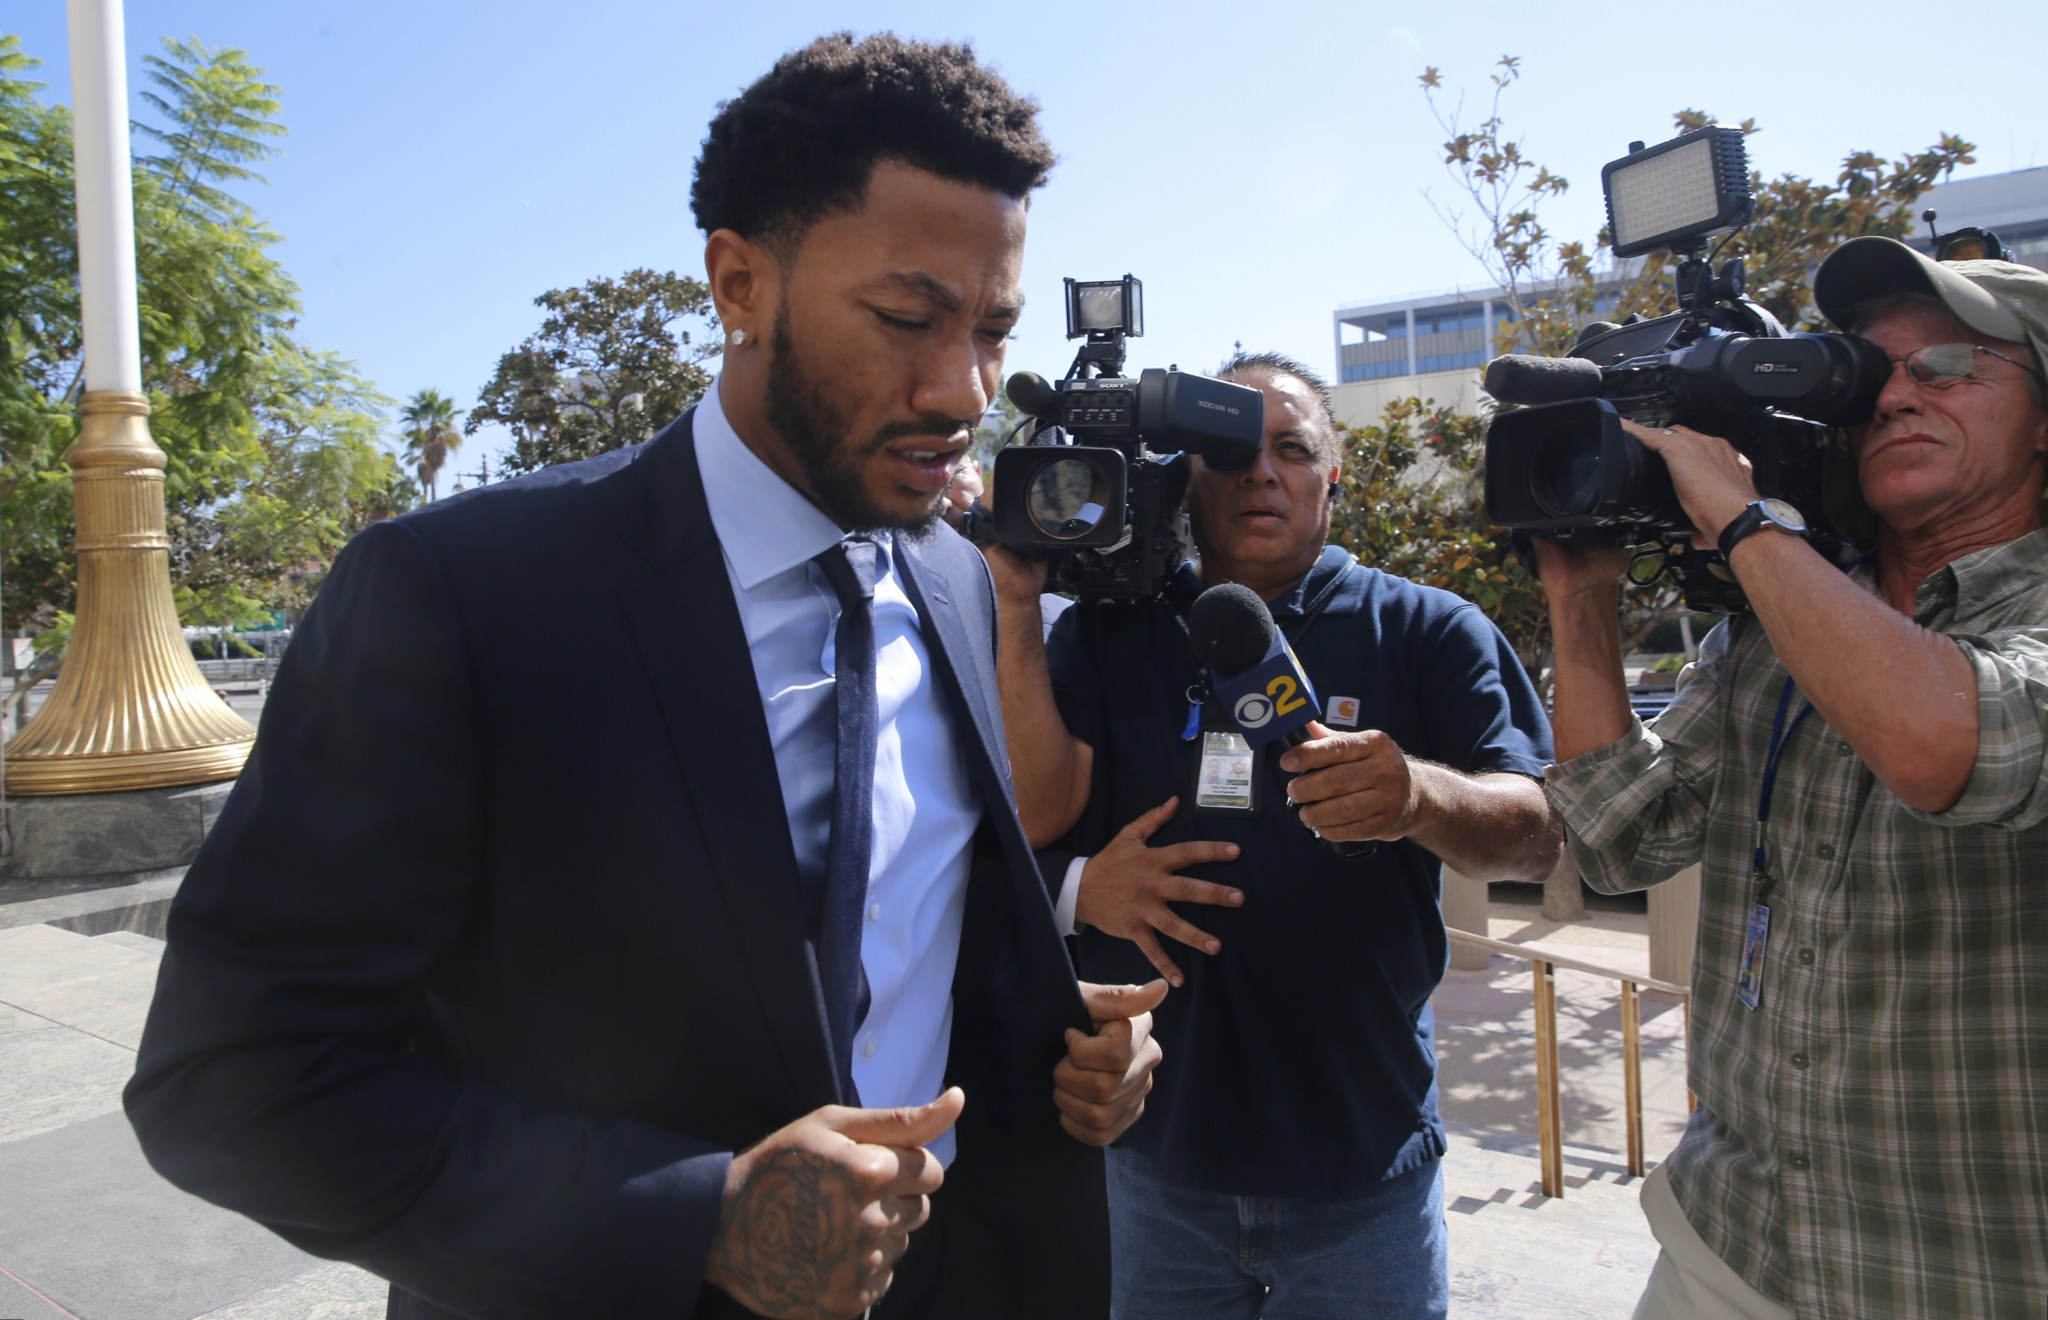 Derrick Rose cleared on all charges in civil rape trial